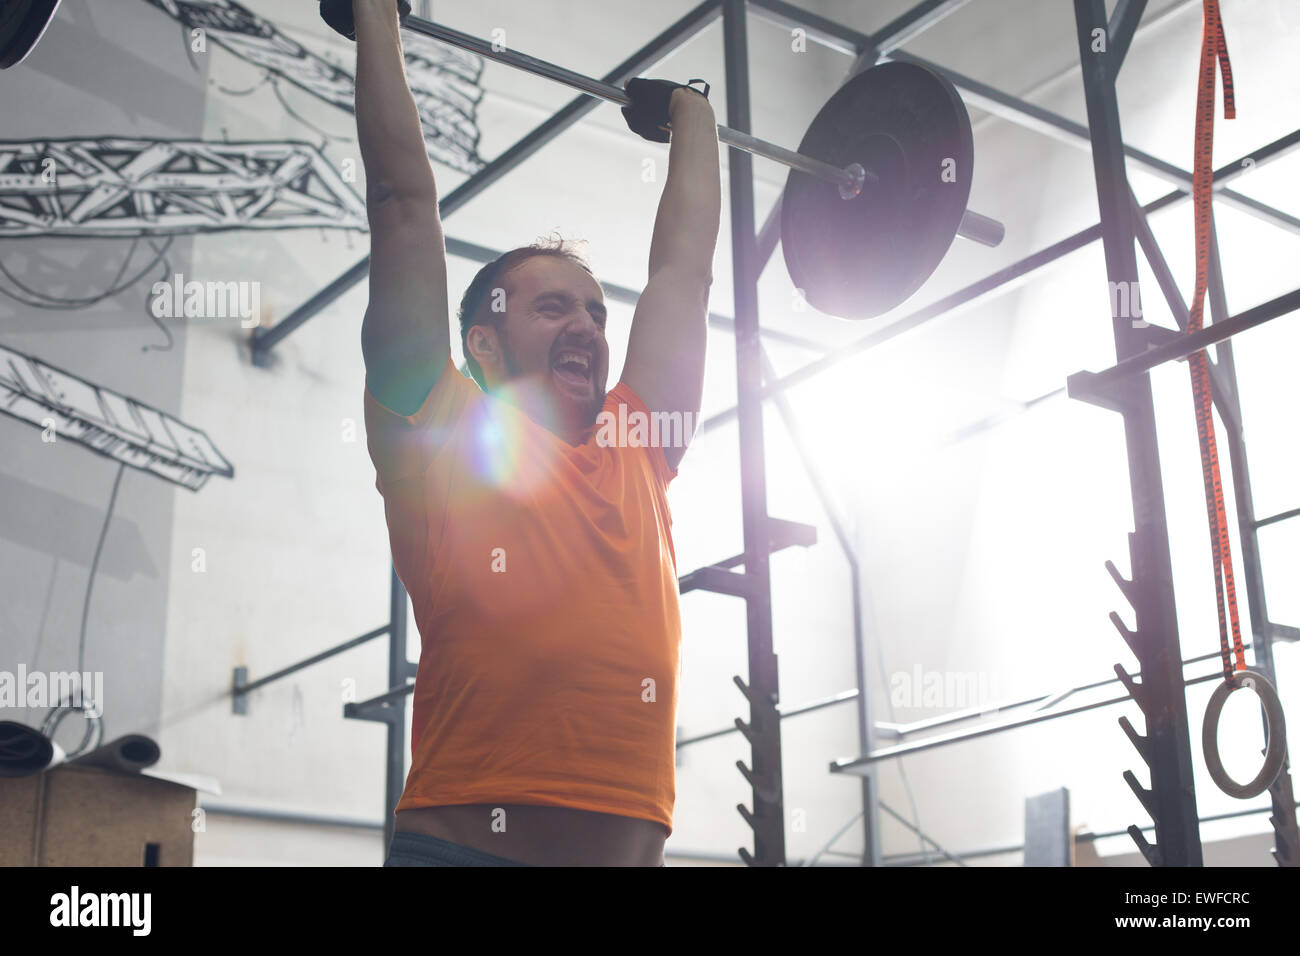 Dedicated man lifting barbell in crossfit gym - Stock Image